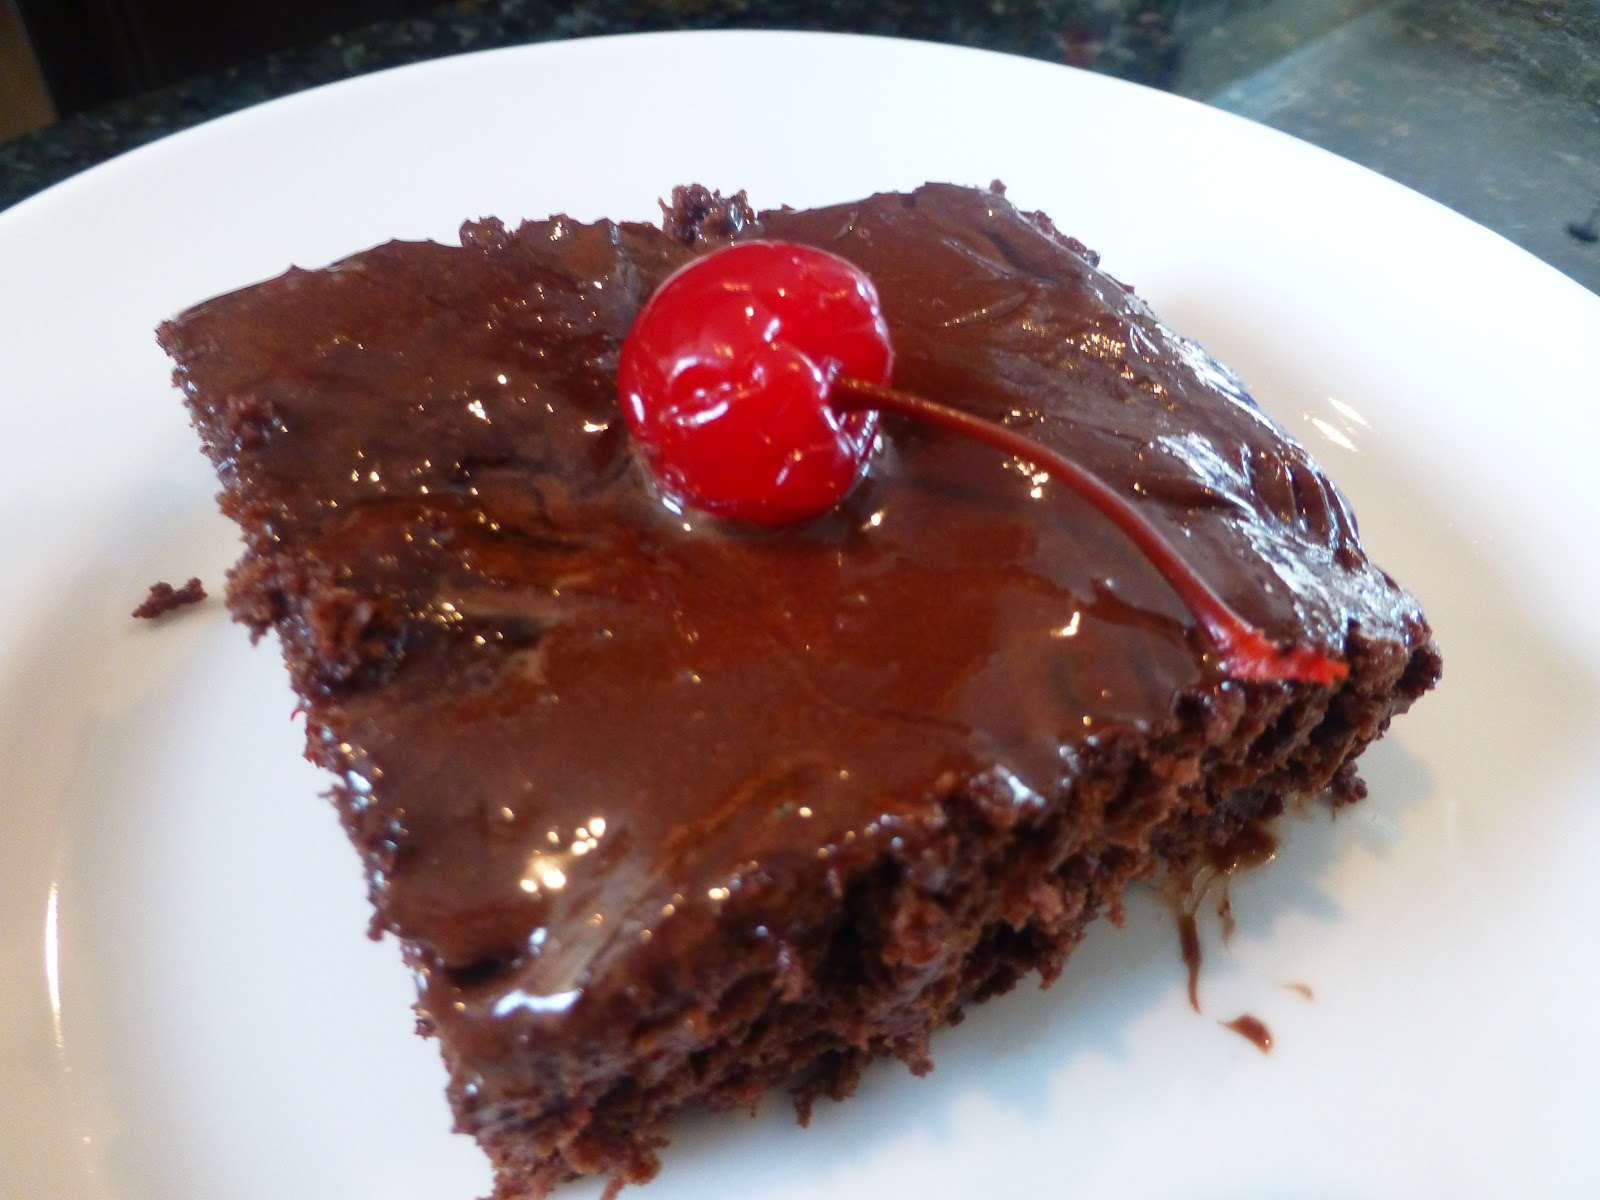 Chocolate Cake Mix With Blueberry Pie Filling